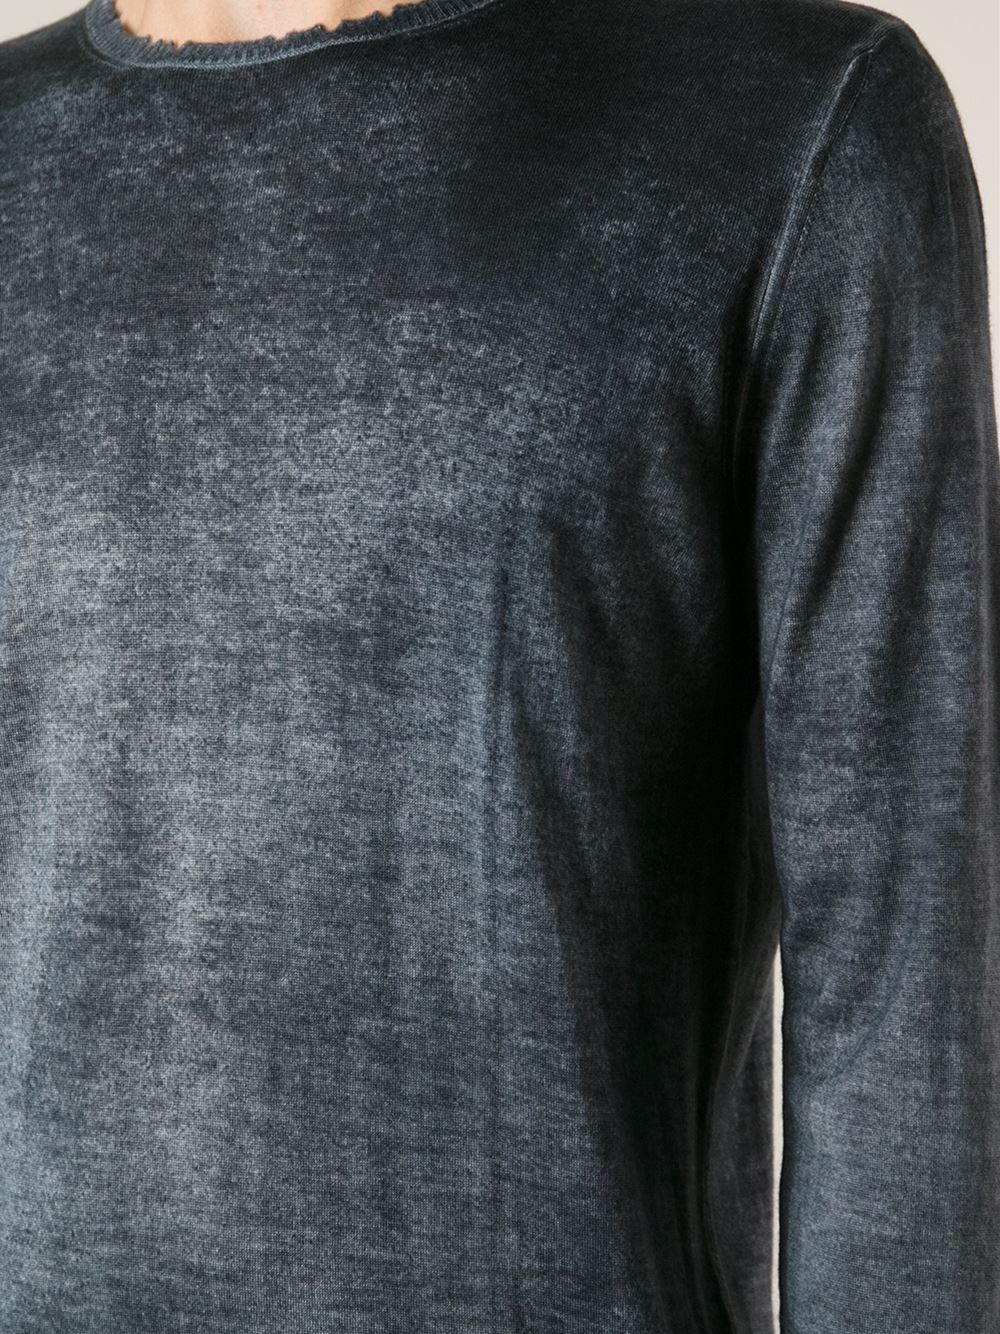 Avant Toi Distressed Raw Edge Sweater in Grey (Grey) for Men